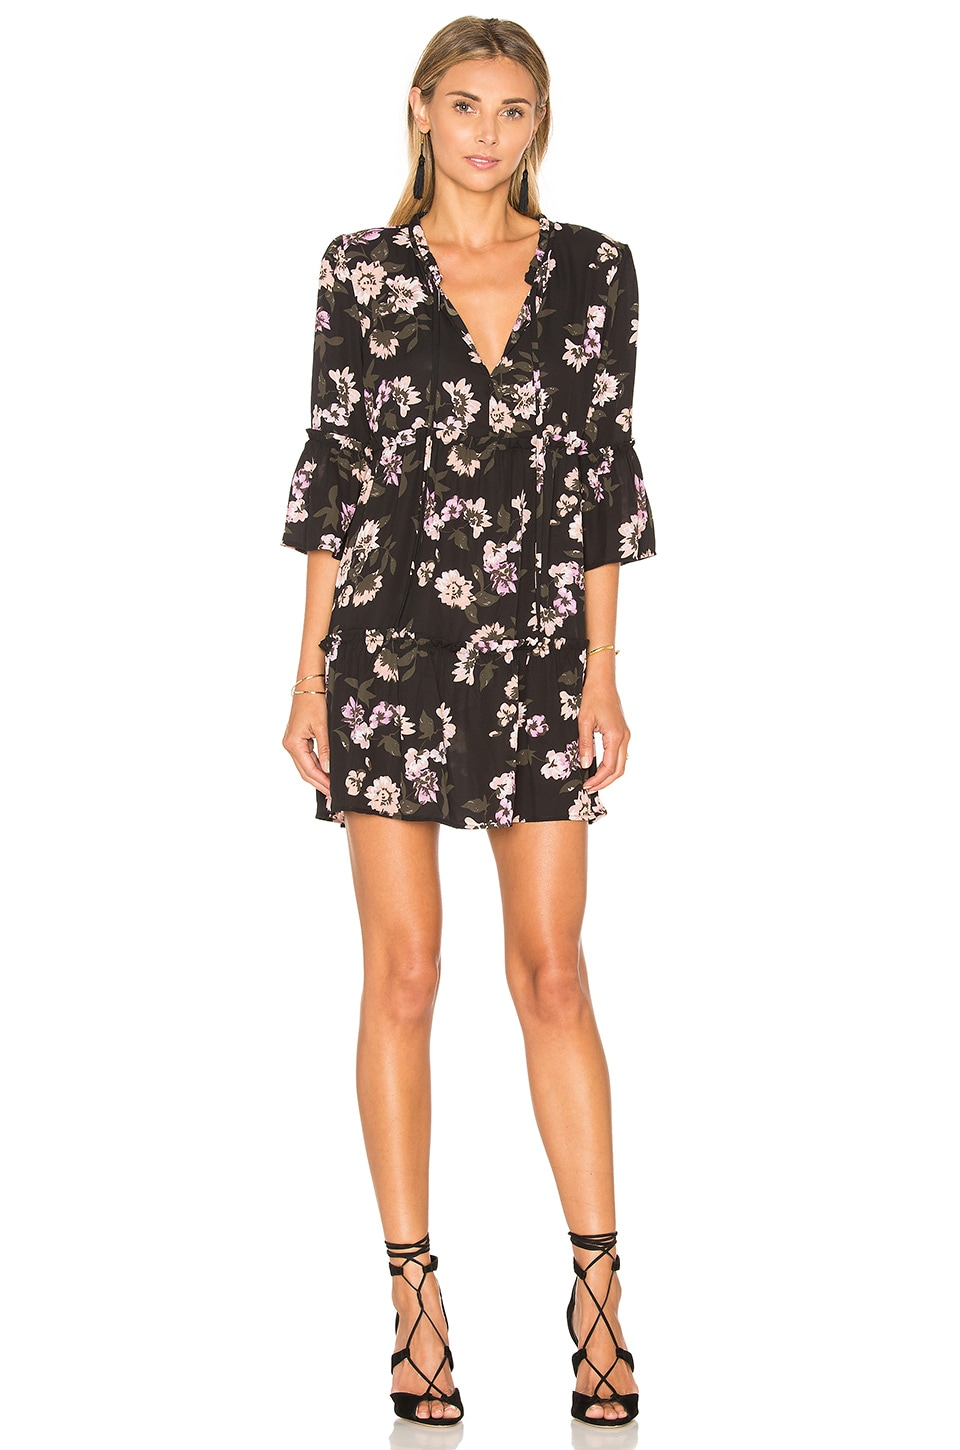 Eight Sixty Peach Blossom Dress in Black & Pink